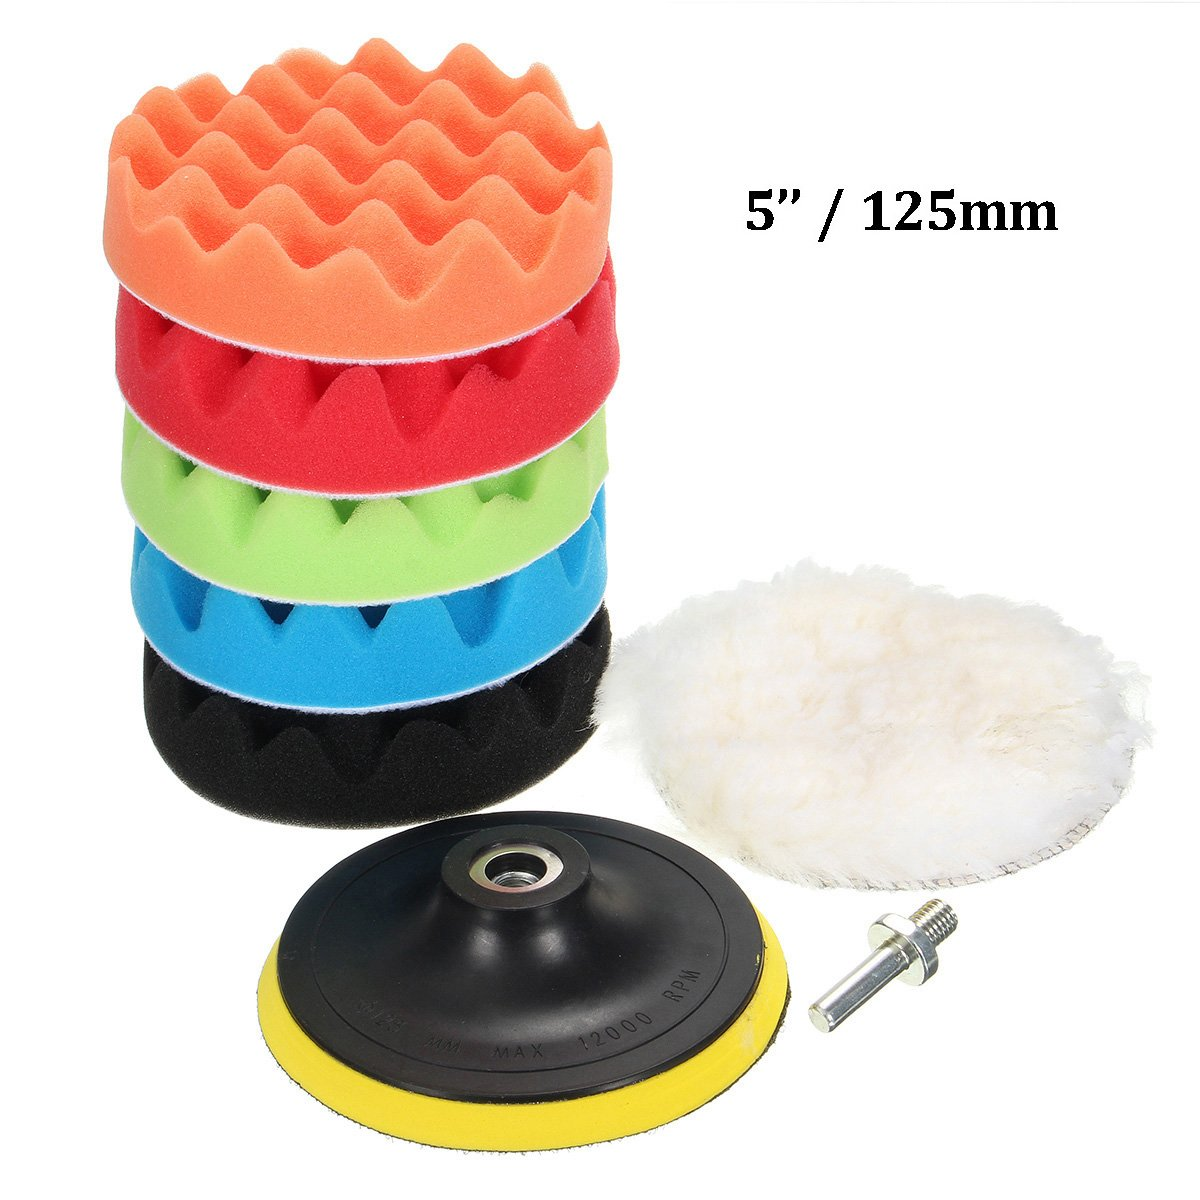 MATCC 7Pcs Polishing Pads Various Sizes Sponge Woolen Polishing Waxing Buffing Pads Kits with M14 Drill Adapter (5')